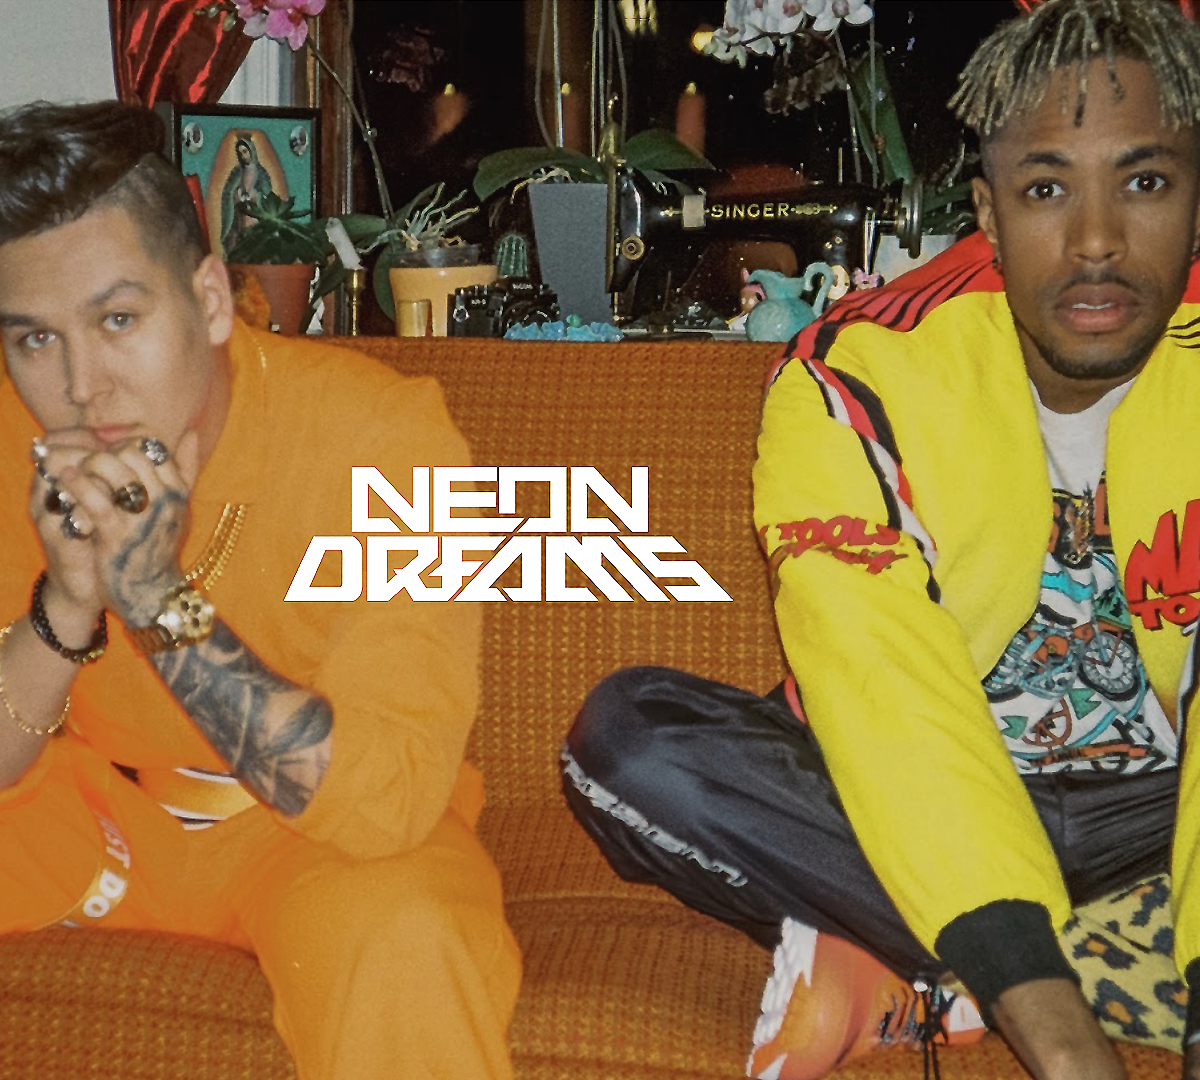 Neon Dreams Release 'We Were Kings' – Their Most Personal Song Yet